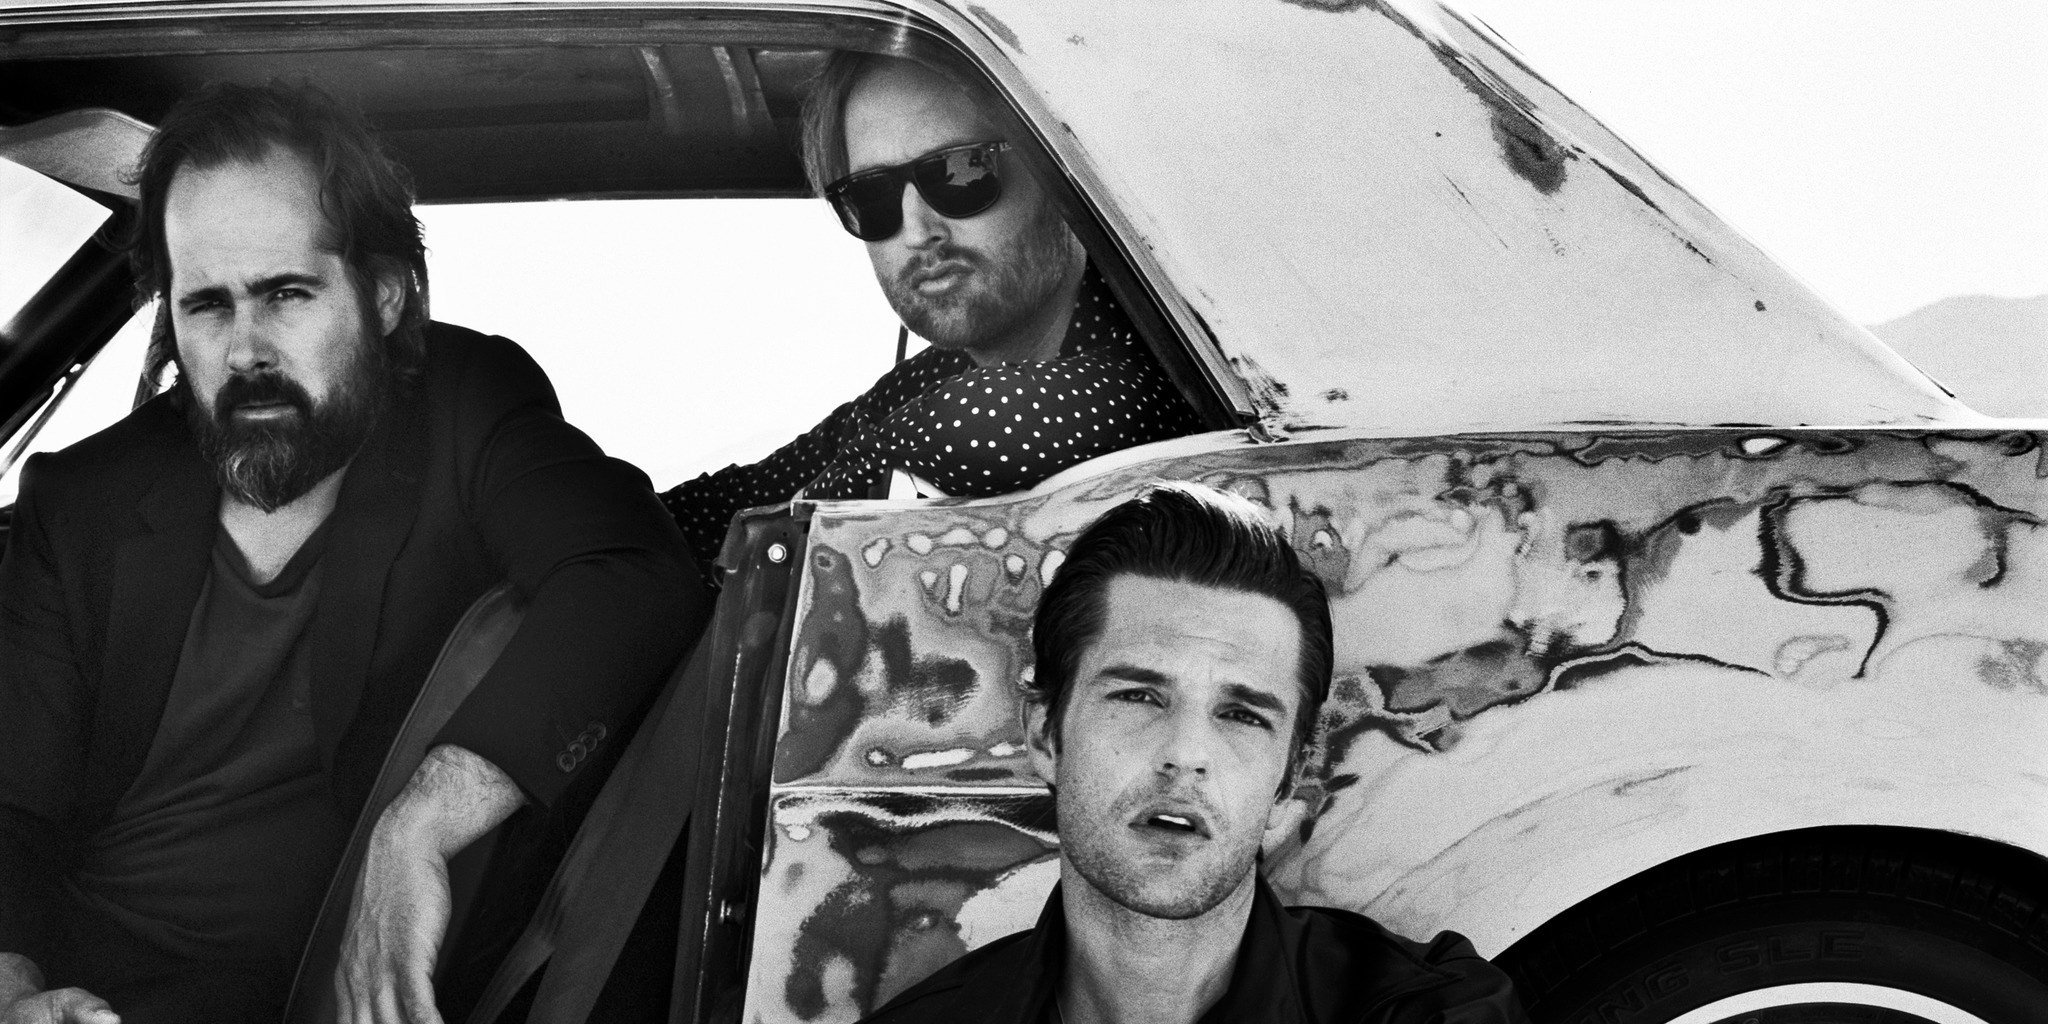 The Killers are coming to Asia in September